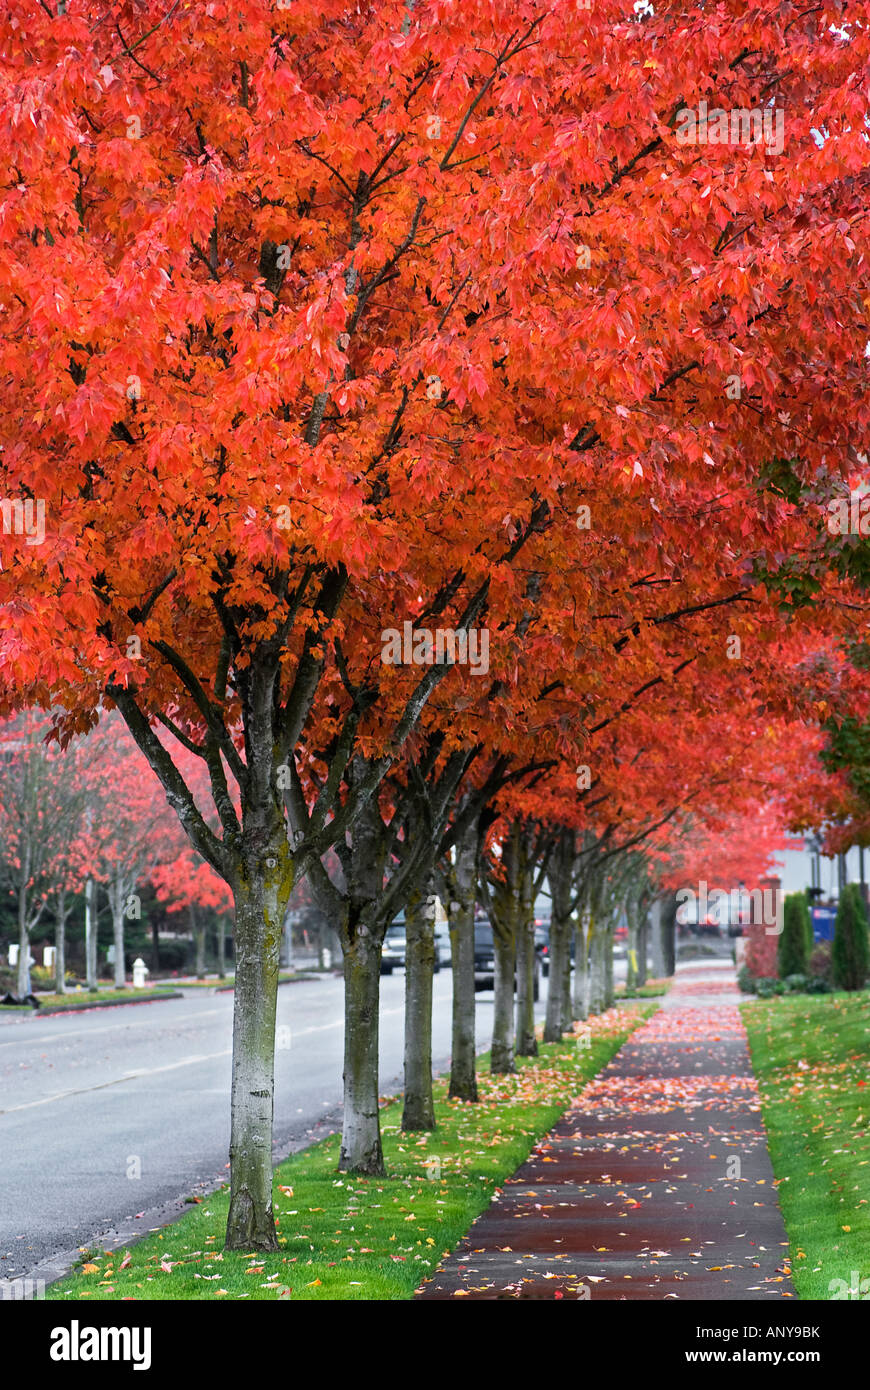 street lined with fall colored trees Issaquah Washington - Stock Image